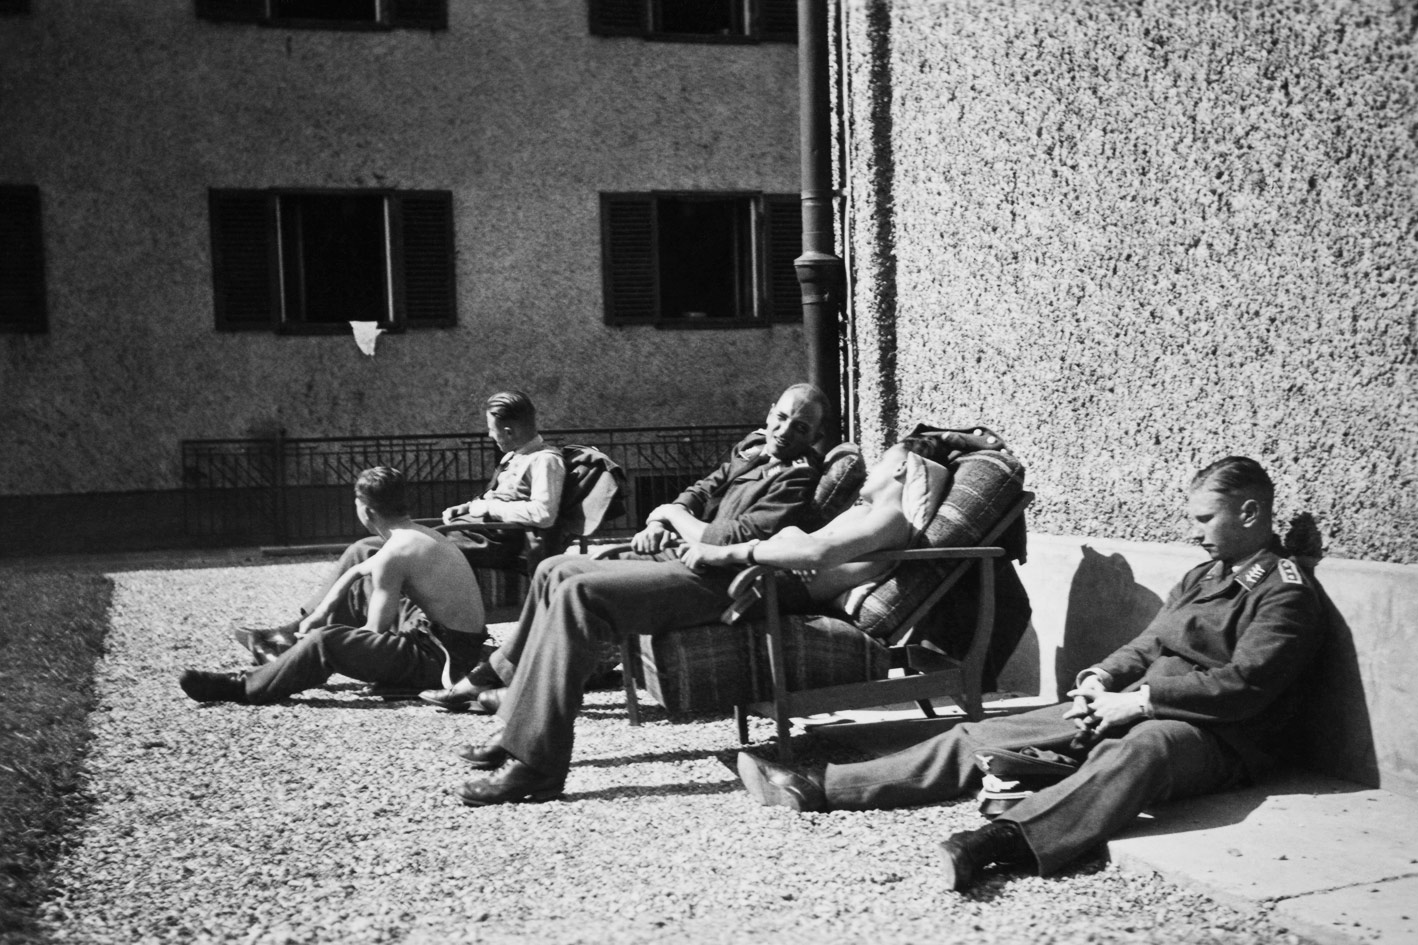 Officers near the hospital enjoying an autumn sun. October 1939